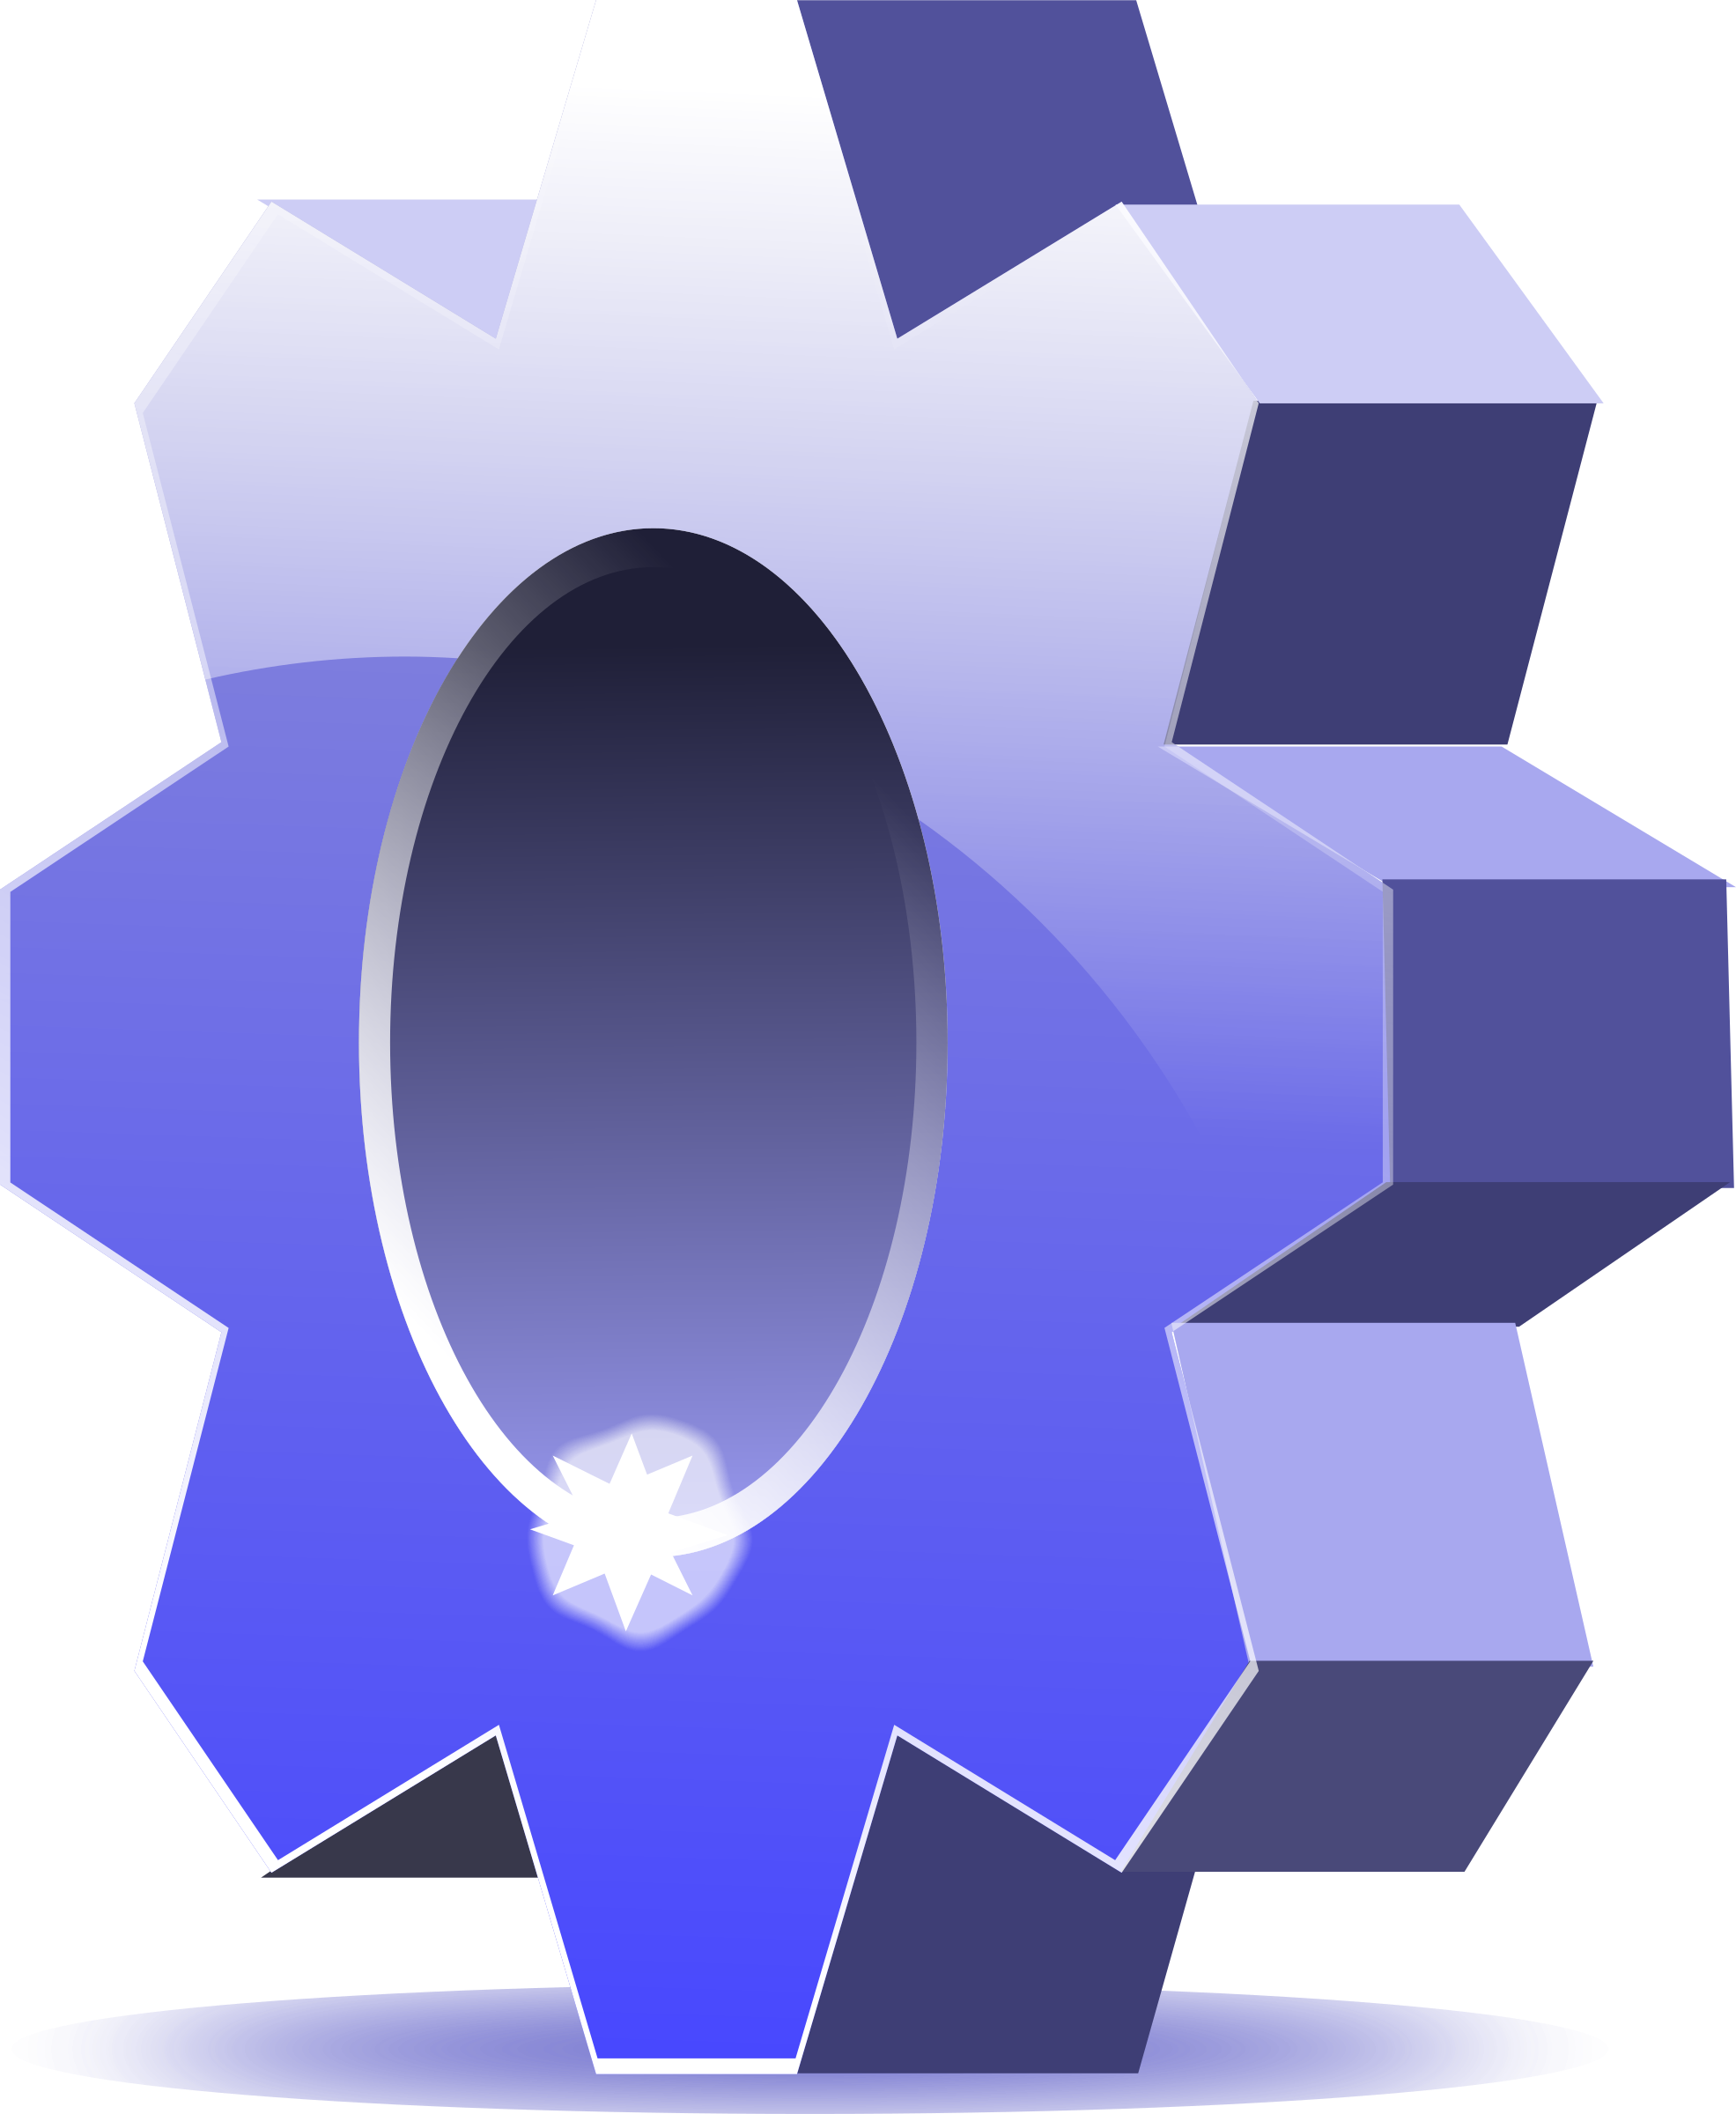 Gear clipart setting. Options icon big image